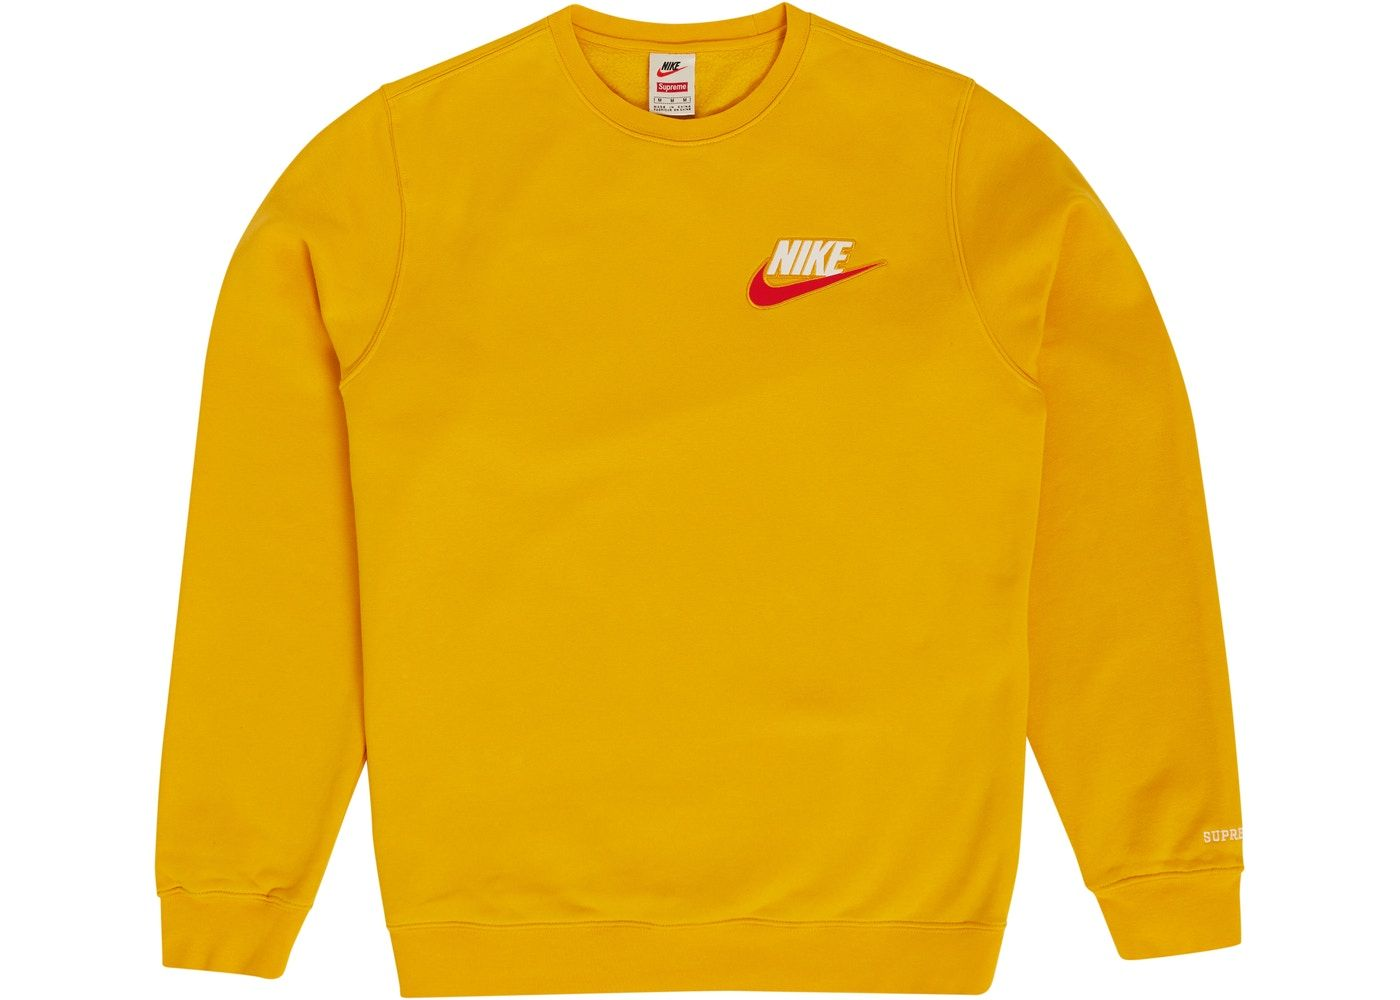 Nike Air Crew Sweat | Nike outfits, Champion clothing, Cool